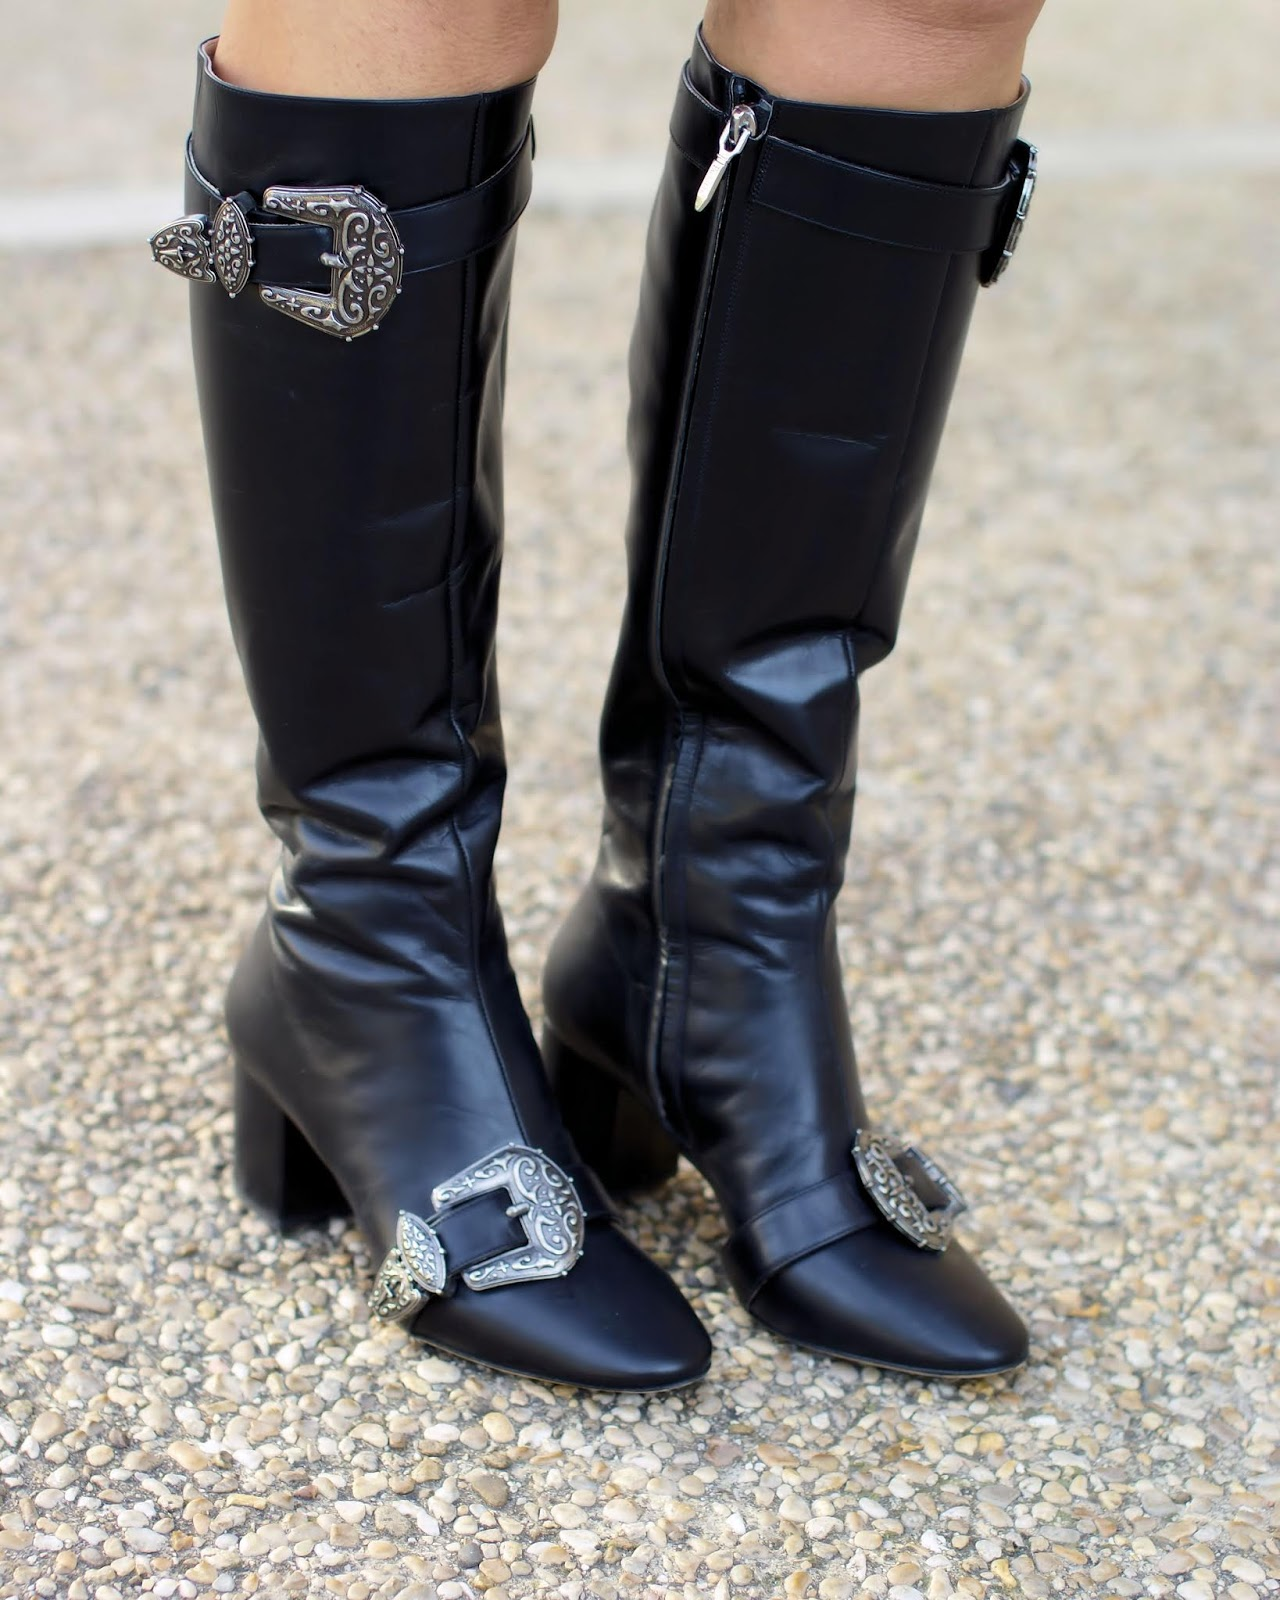 Cesare Paciotti boots on Fashion and Cookies fashion blog, fashion blogger